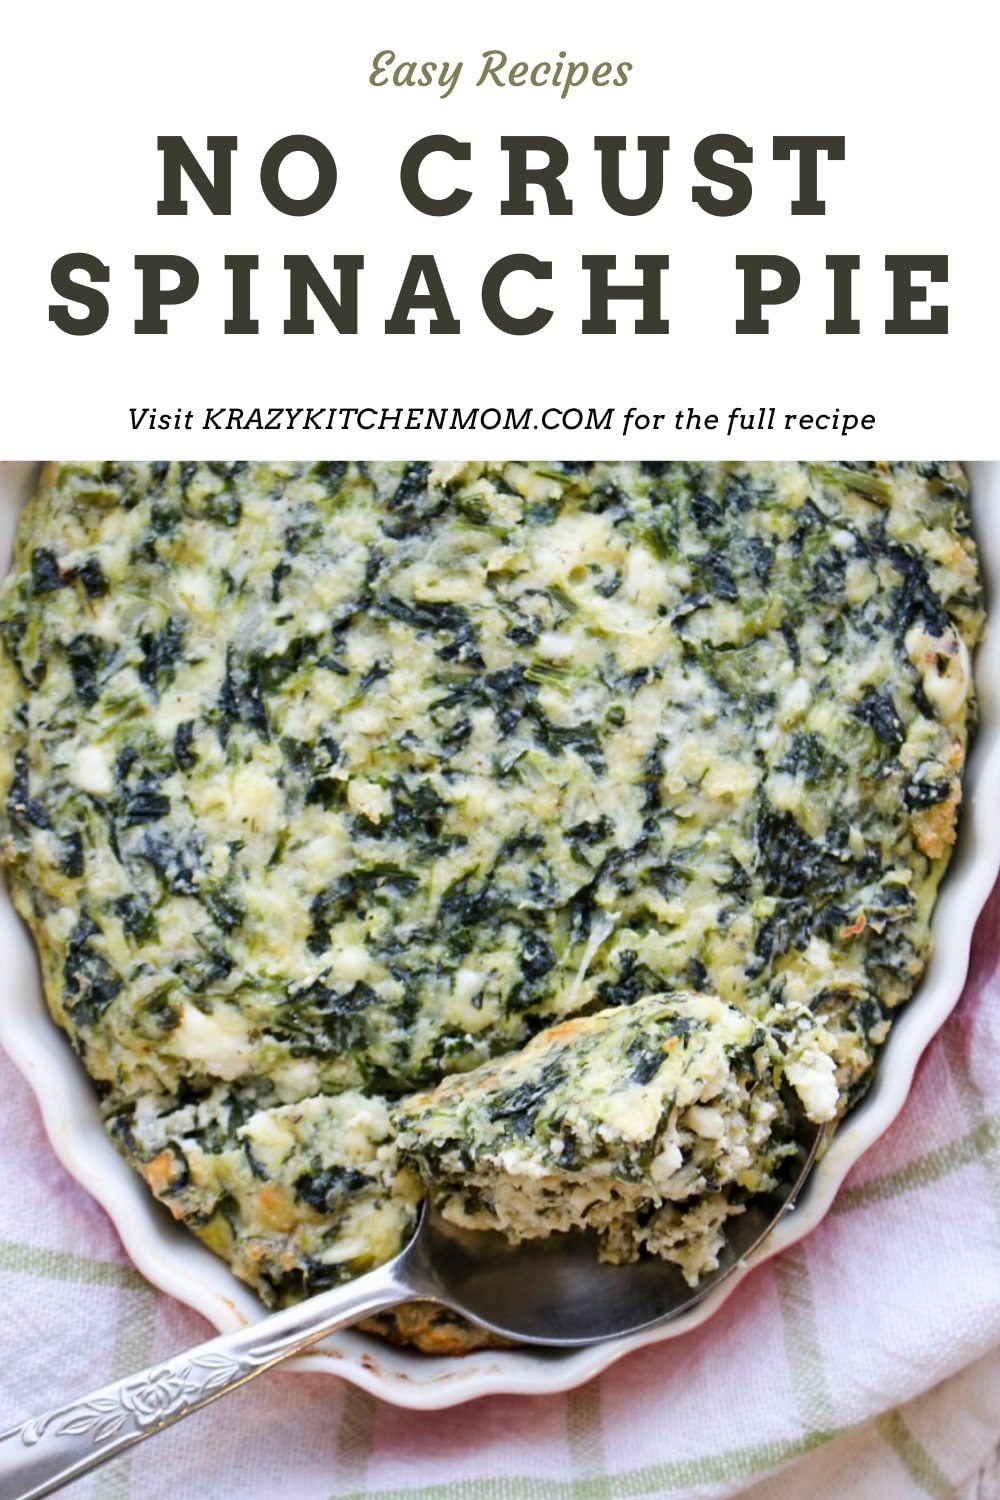 This is the best Crustless Spinach Pie, also called Greek Spanakopita has all of the flavors and many of the same ingredients as Greek Spinach Pie, without the crust. It's the perfect low-carb or Keto spinach pie recipe. via @krazykitchenmom